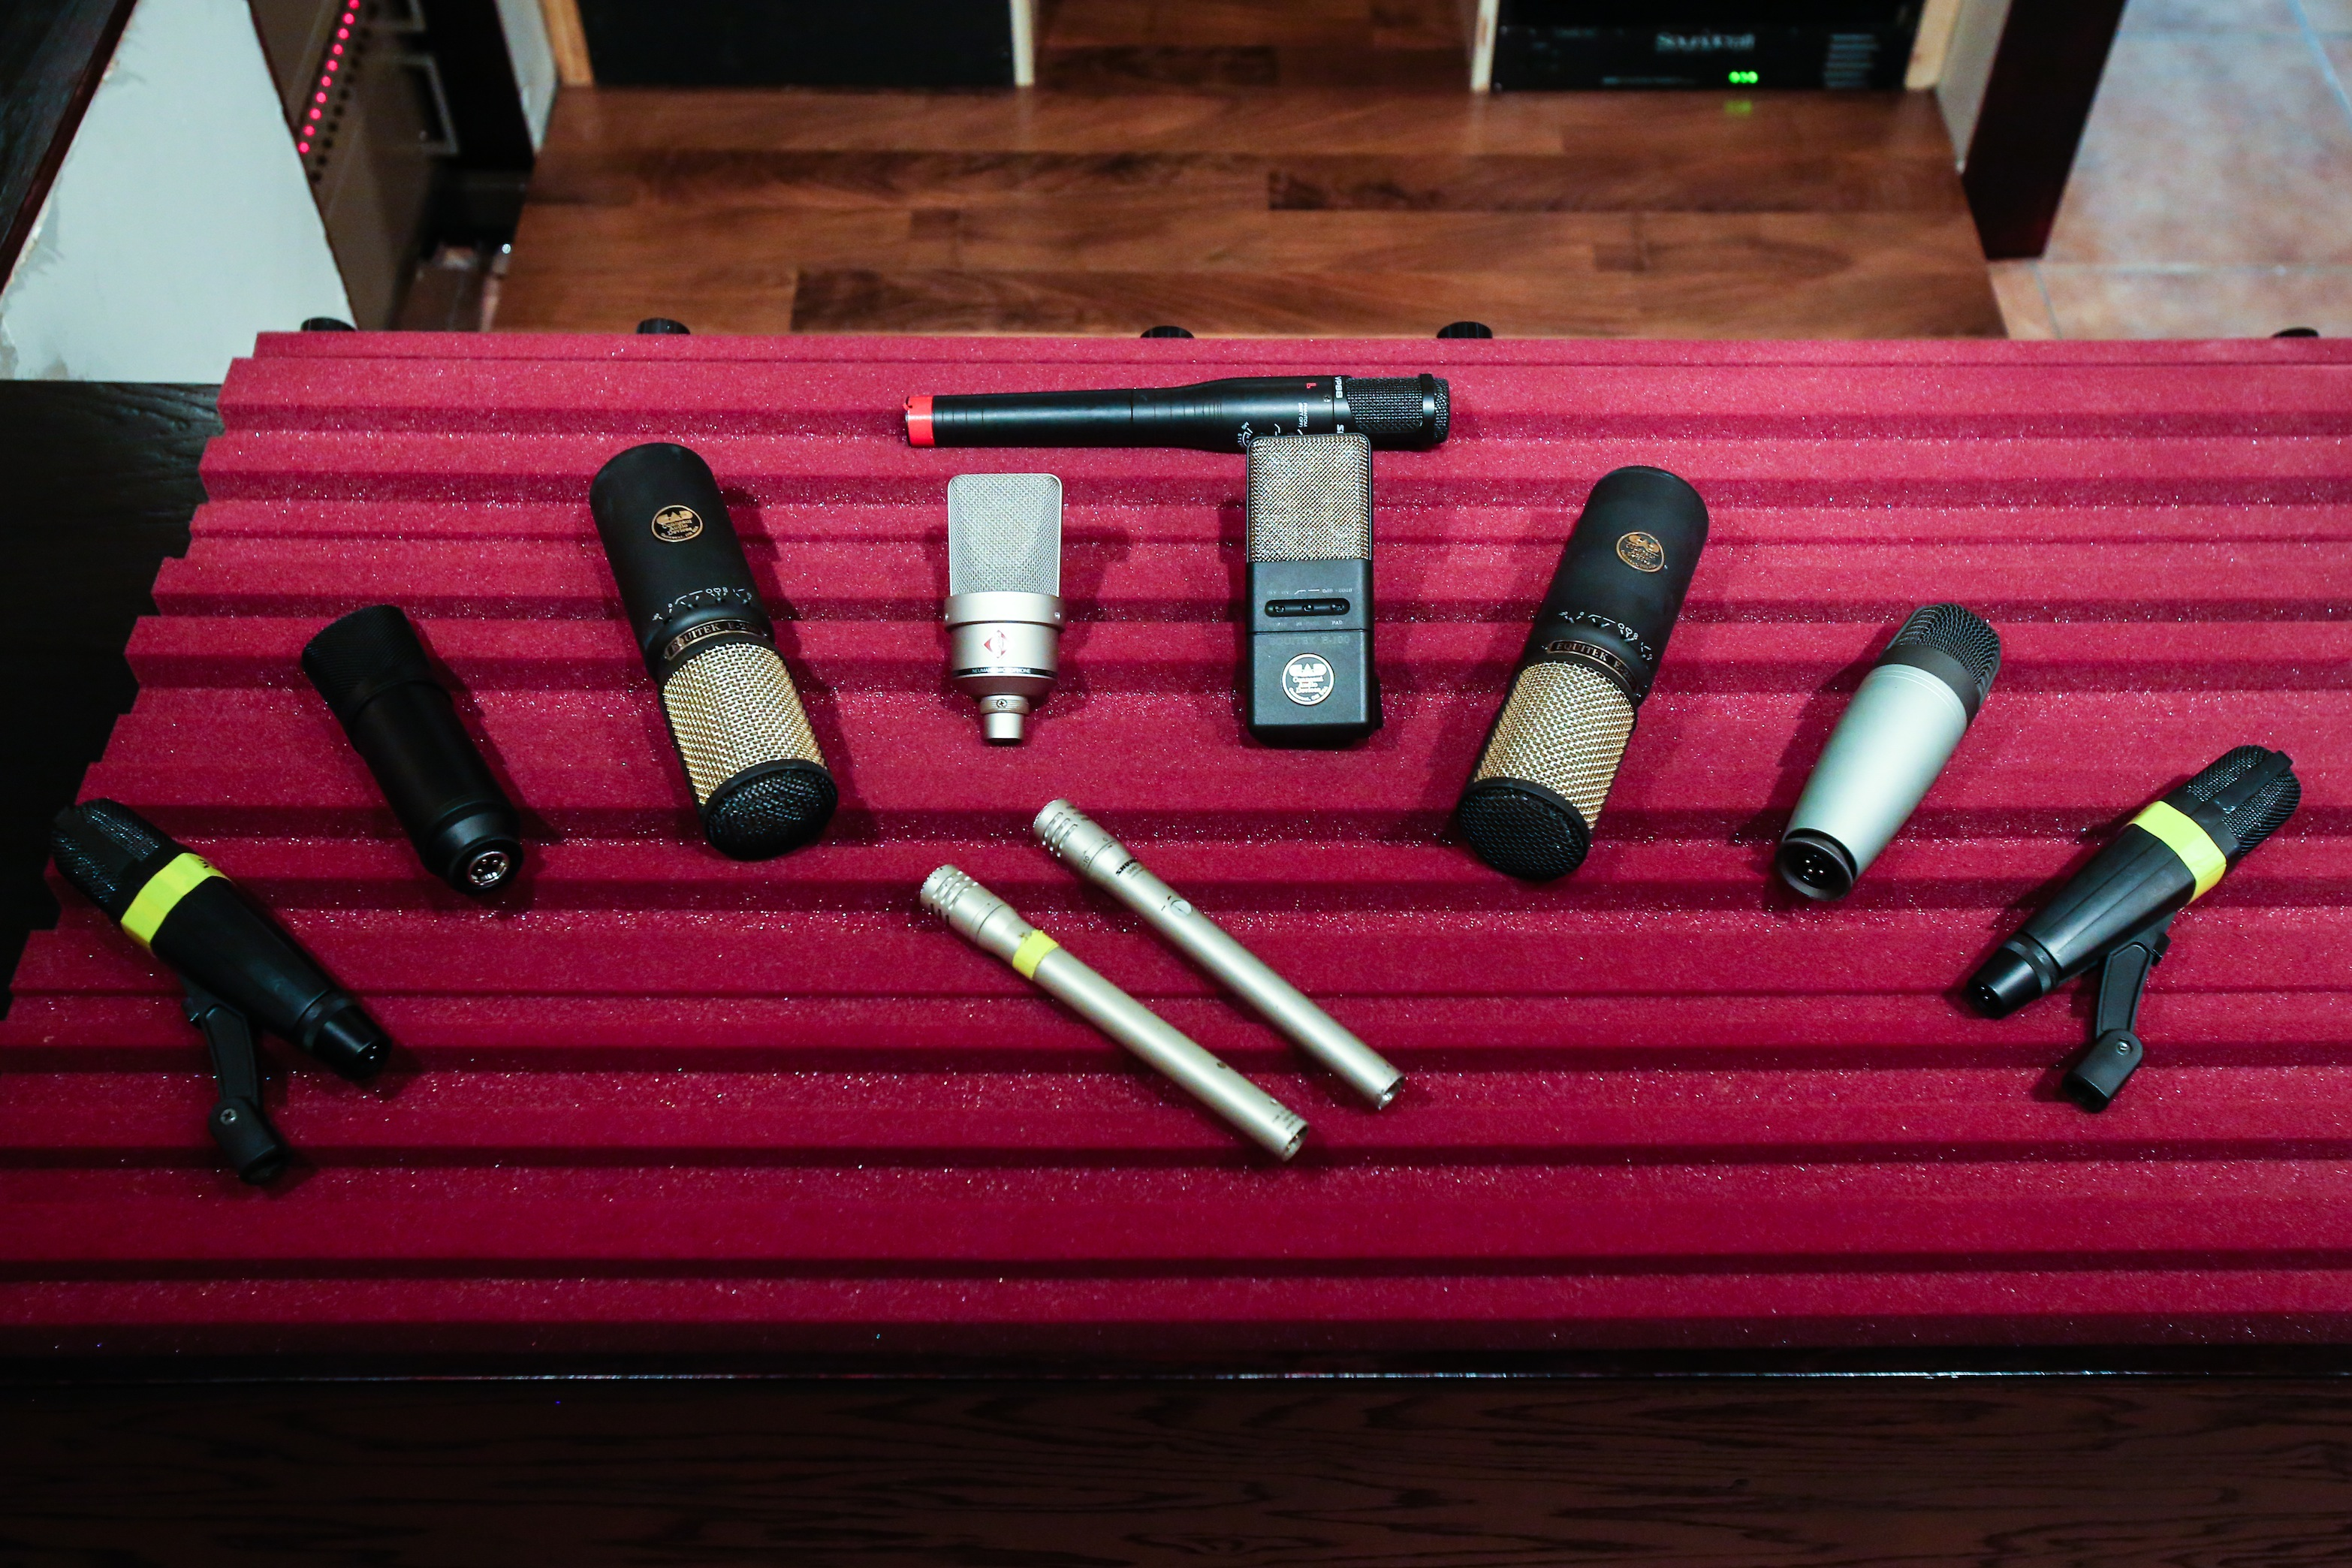 Available Microphones